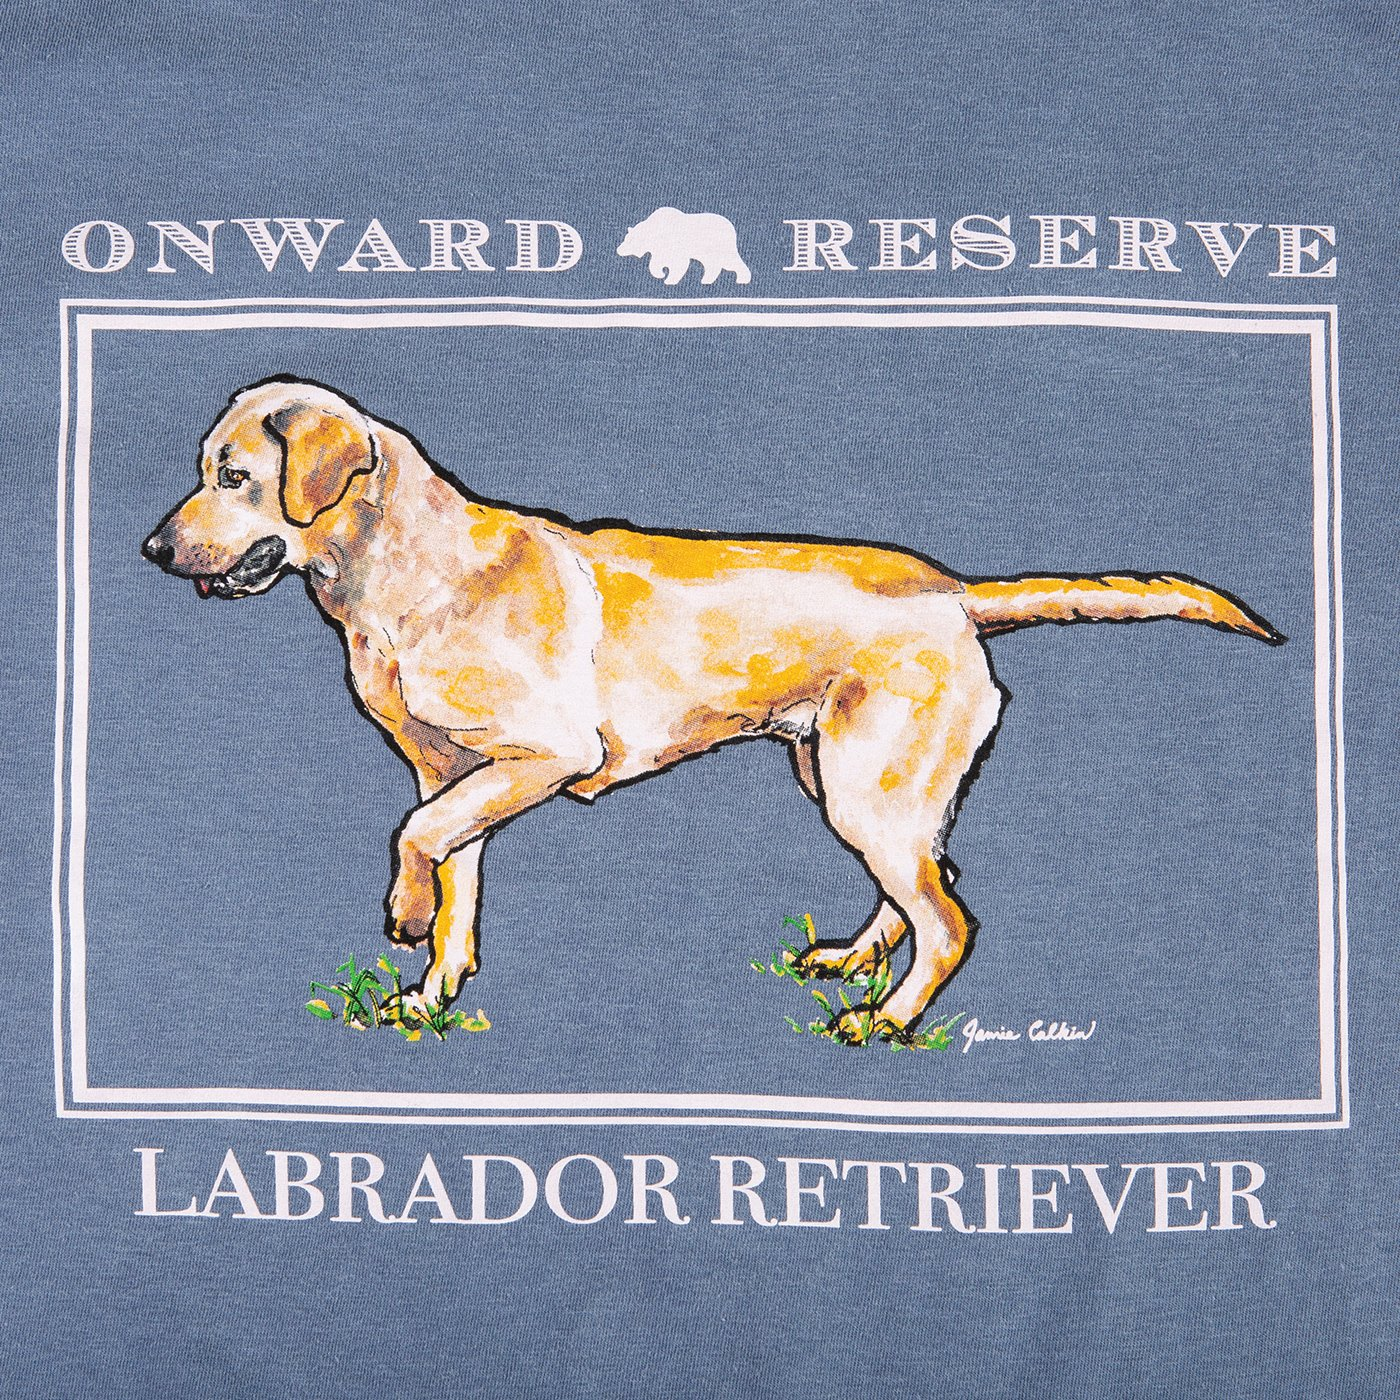 OR-Jamie-Tee-Labrador-Retriever-Blue-Detail.jpg